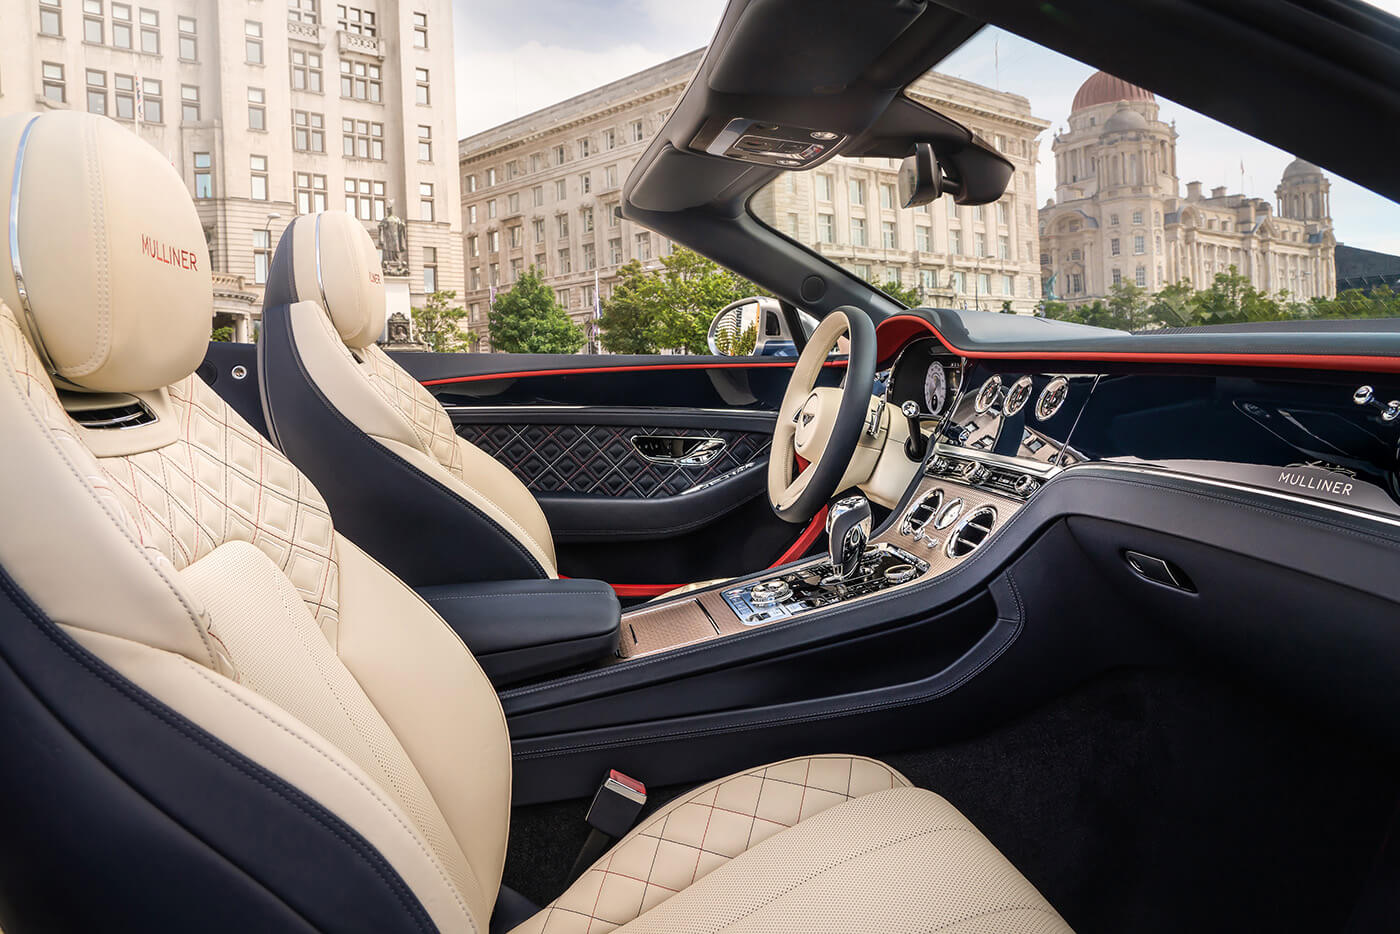 Continental GT Mulliner Convertible, part of Bentley Mulliner collection at Salon Prive 2020